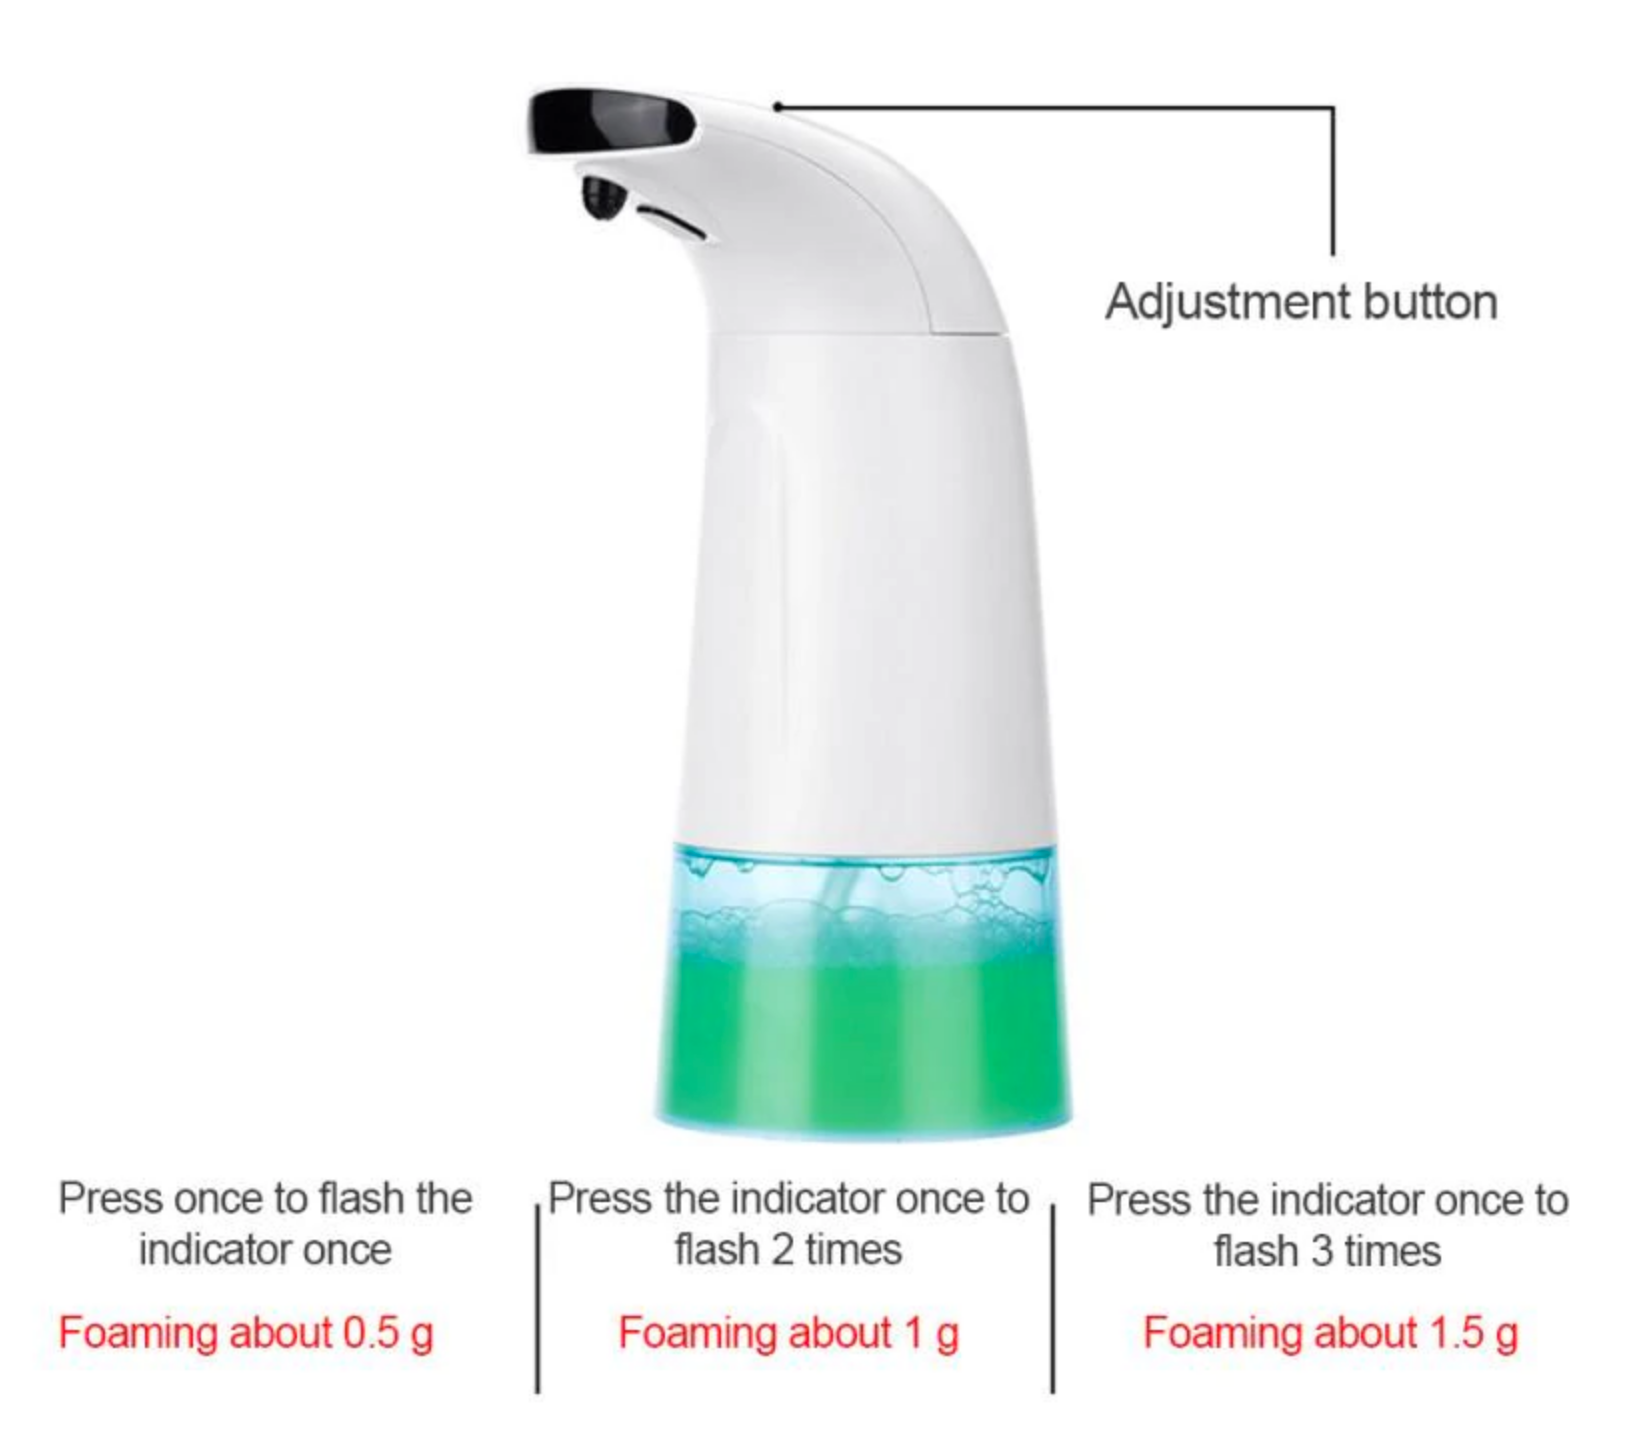 NoTouch™ Automatic Foaming Hand Soap Wash Infrared Smart Sensor